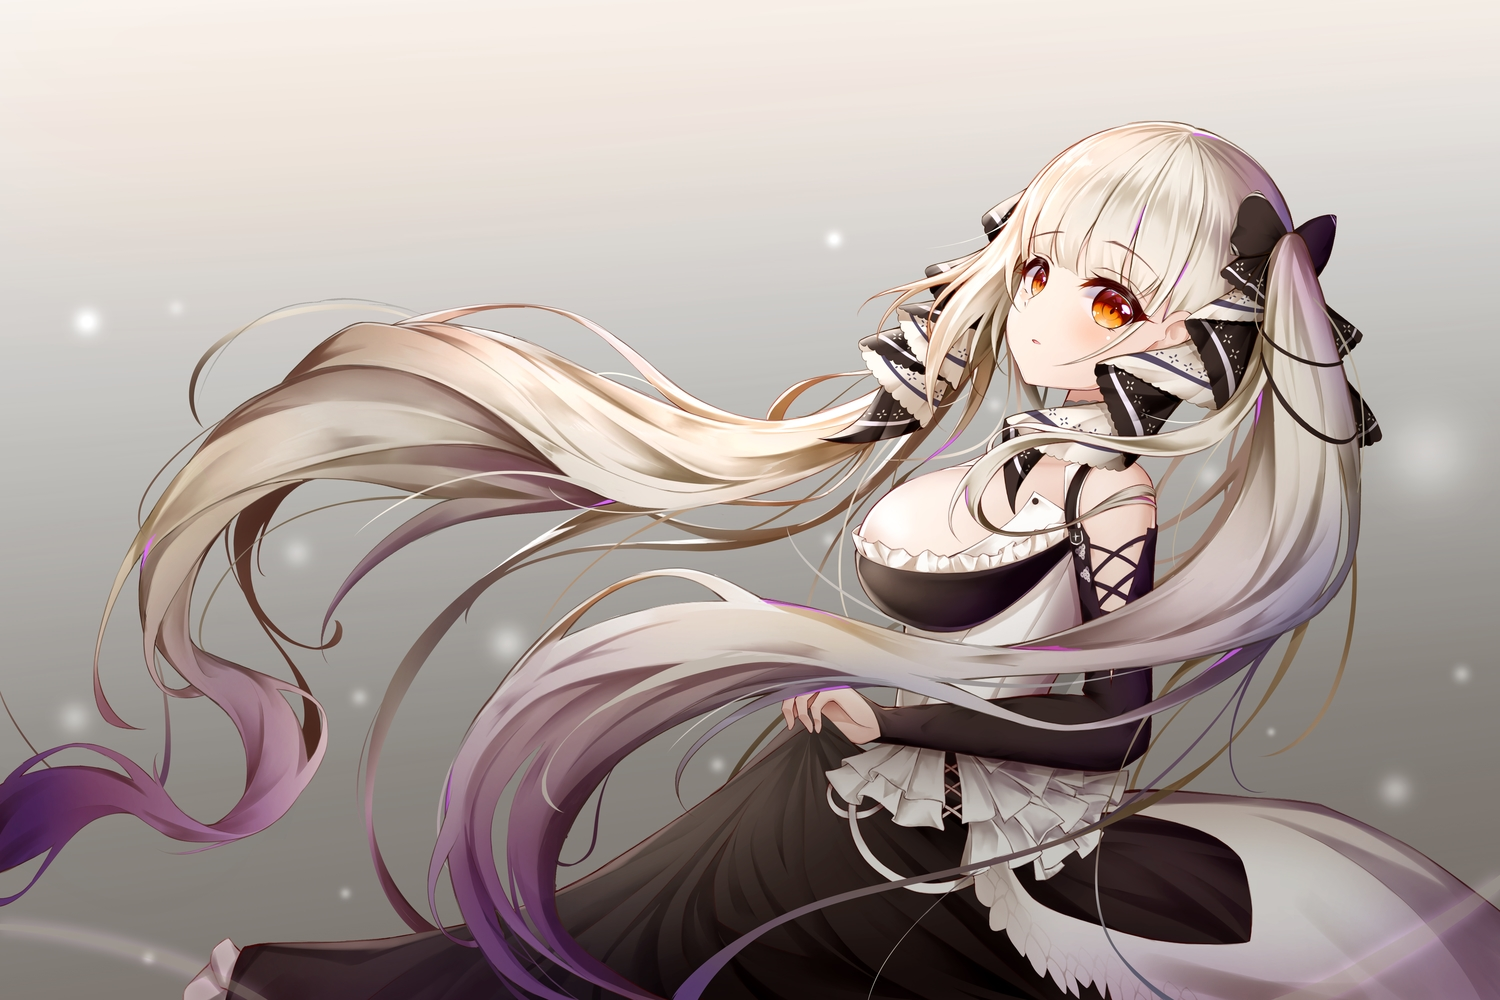 anthropomorphism azur_lane bow breasts formidable_(azur_lane) goth-loli gradient gray gray_hair lolita_fashion long_hair orange_eyes shalsqk skirt_lift twintails